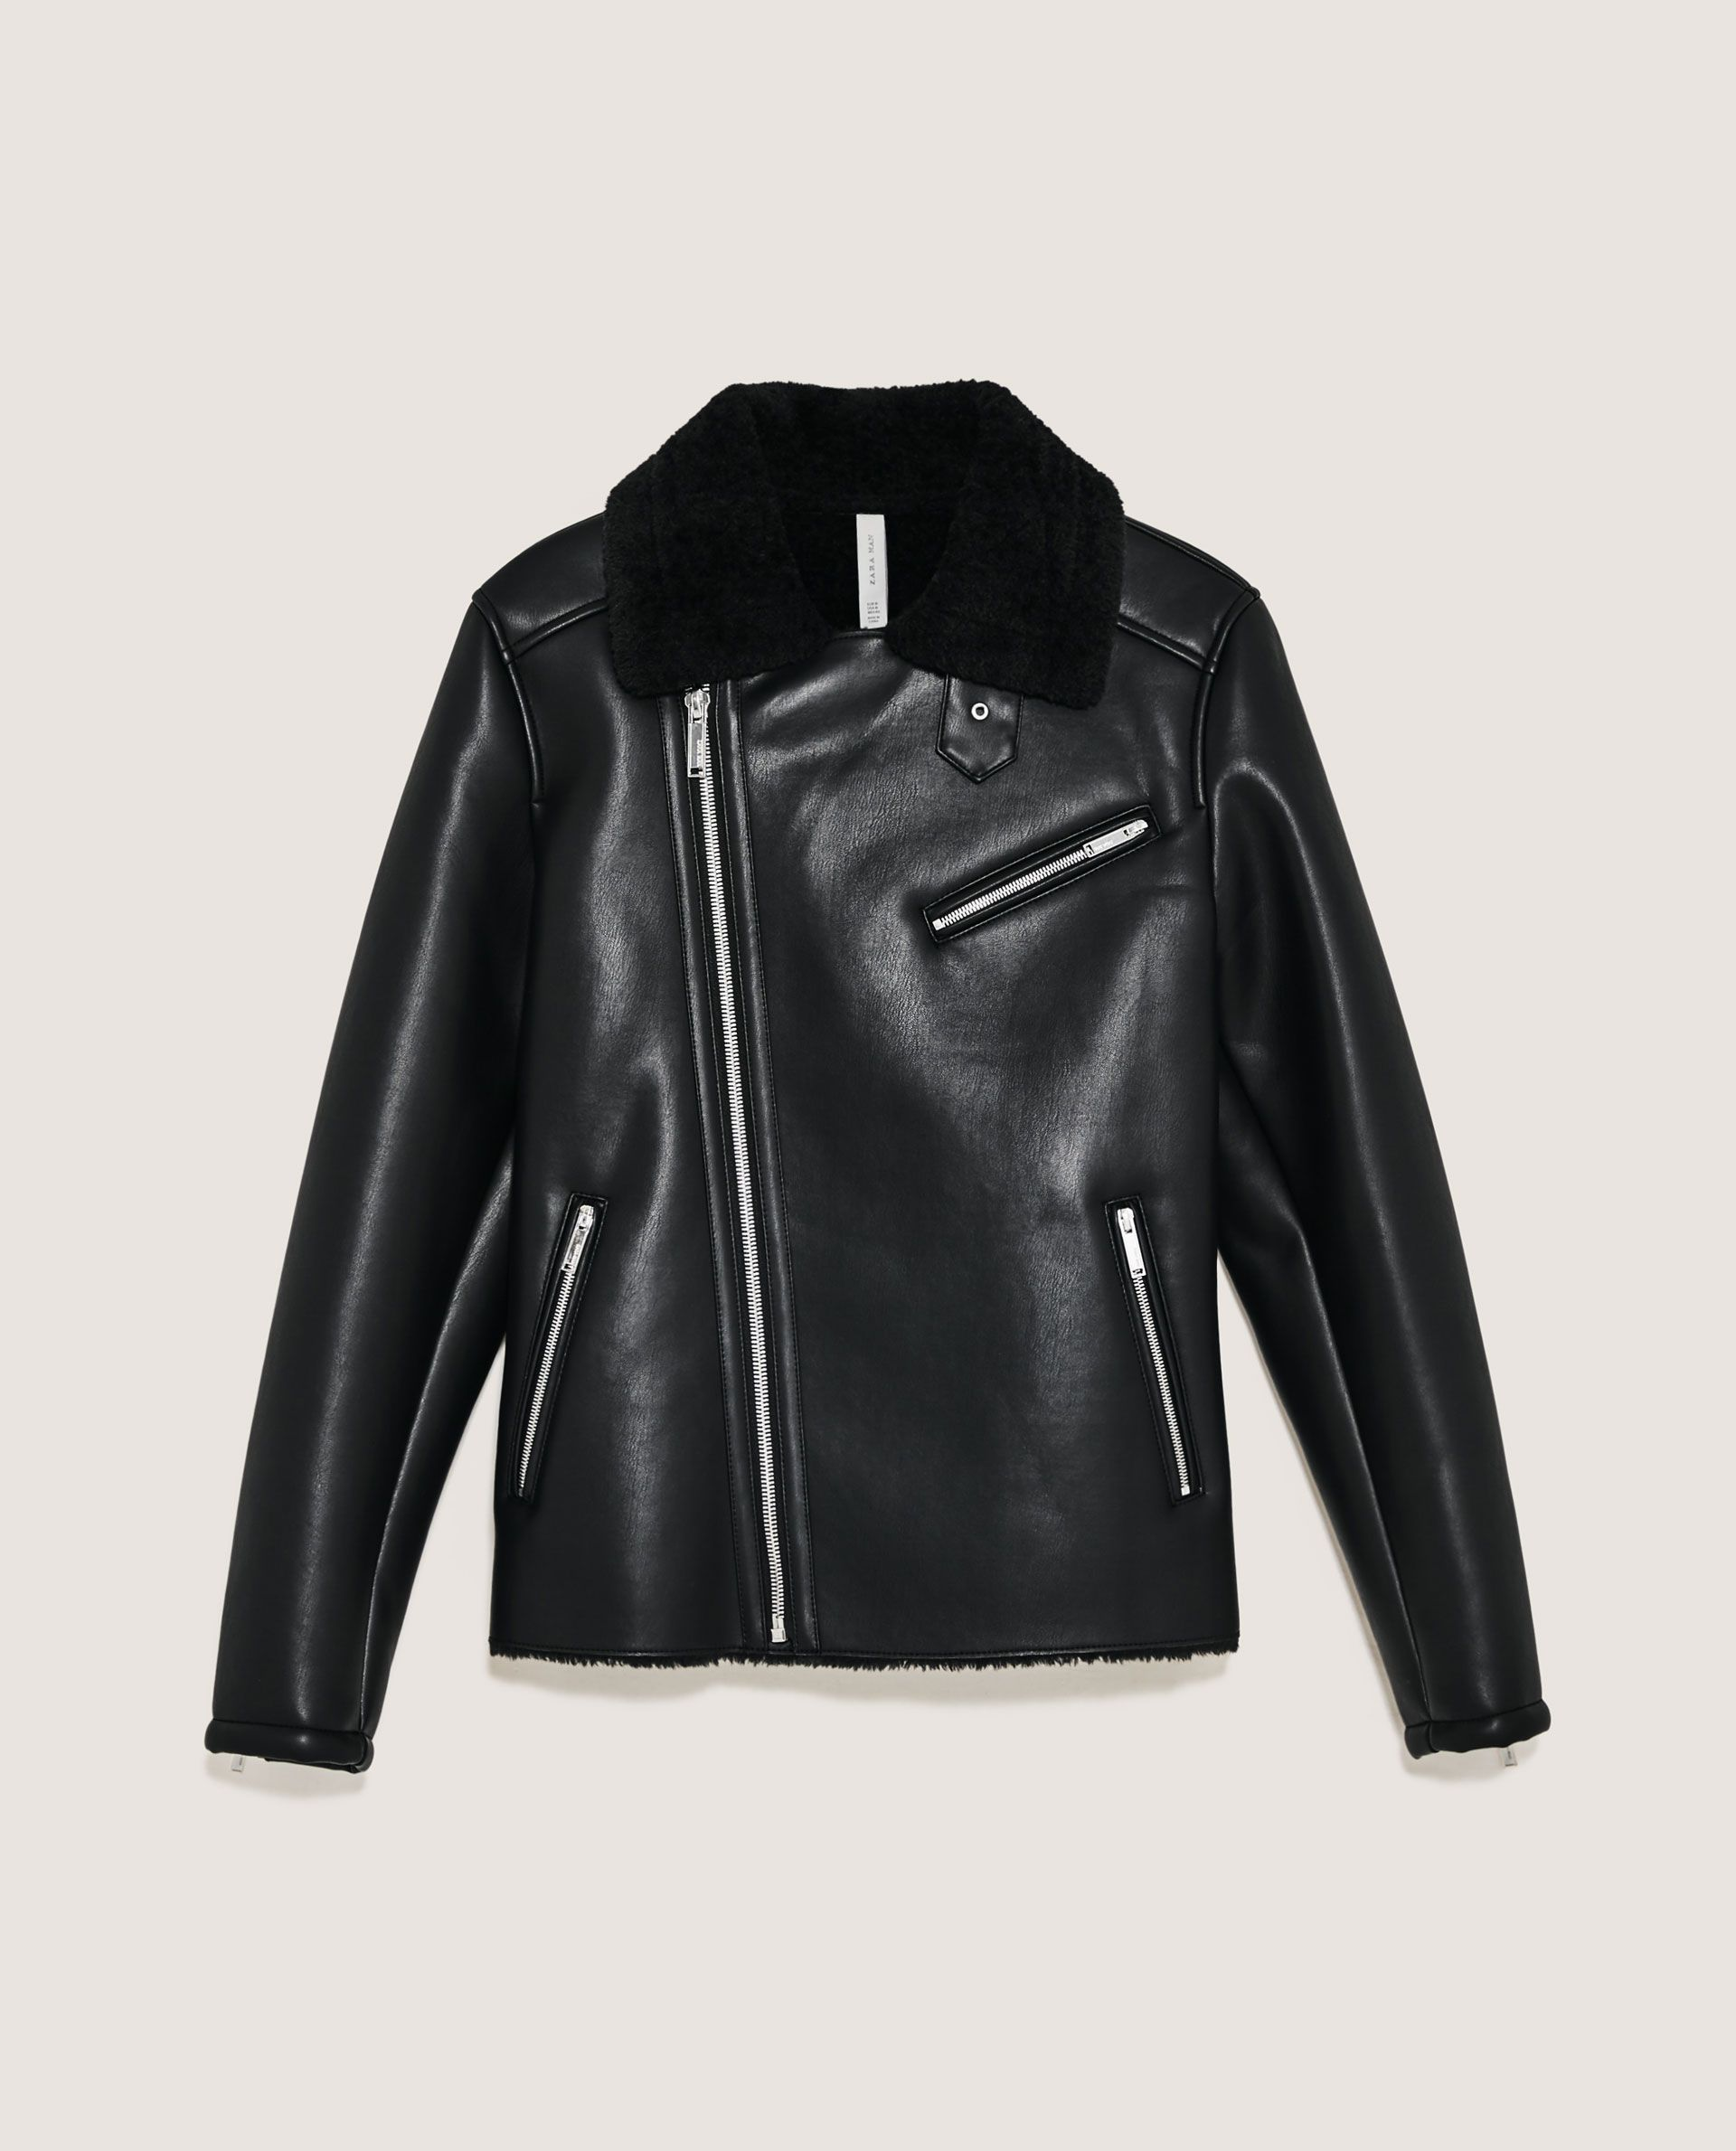 Image 8 Of Double Faced Jacket From Zara Jackets Jacket Brands Black Shirt [ 2379 x 1920 Pixel ]